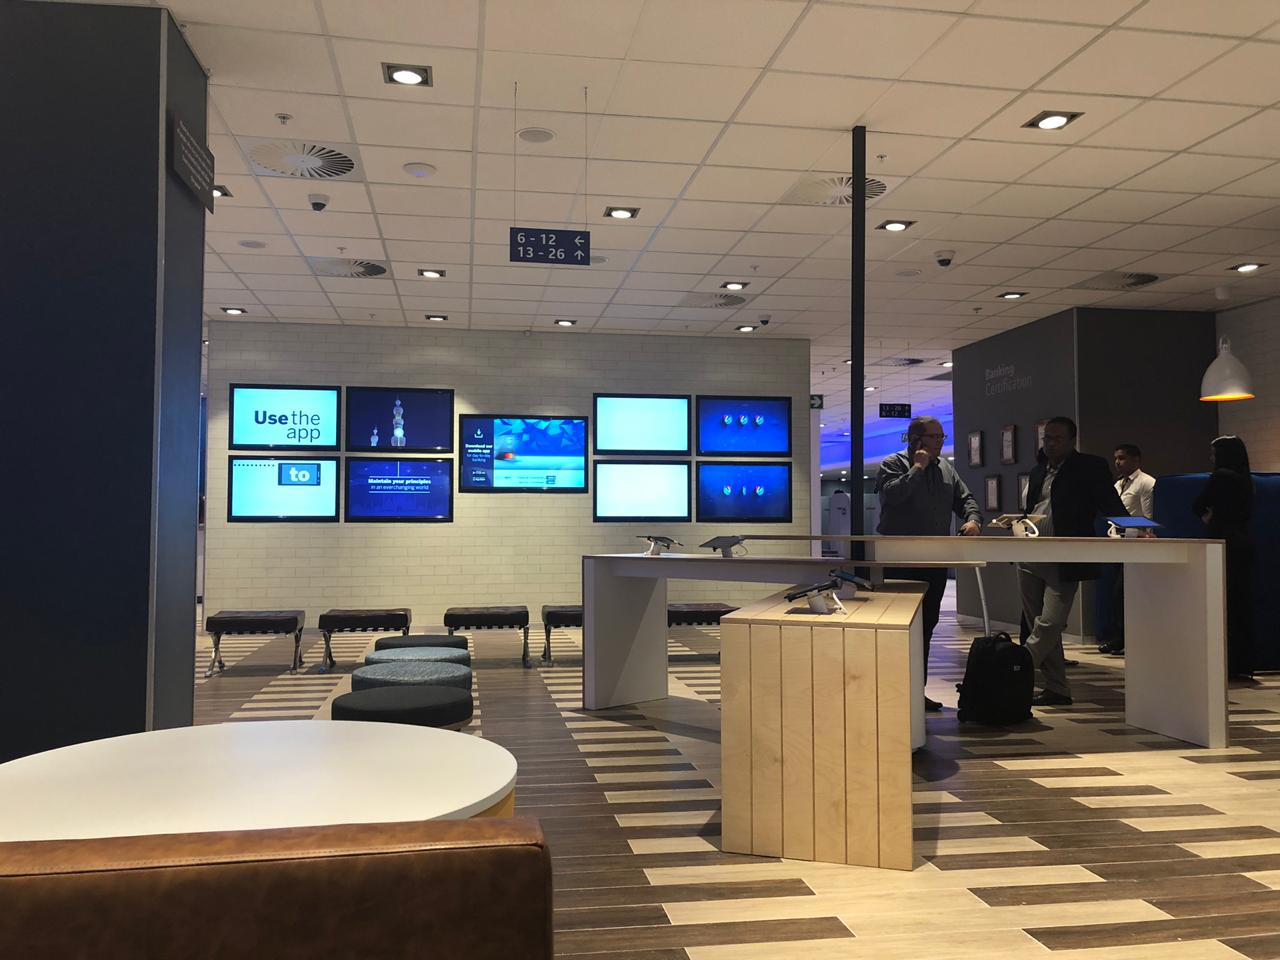 Video Wall of screens